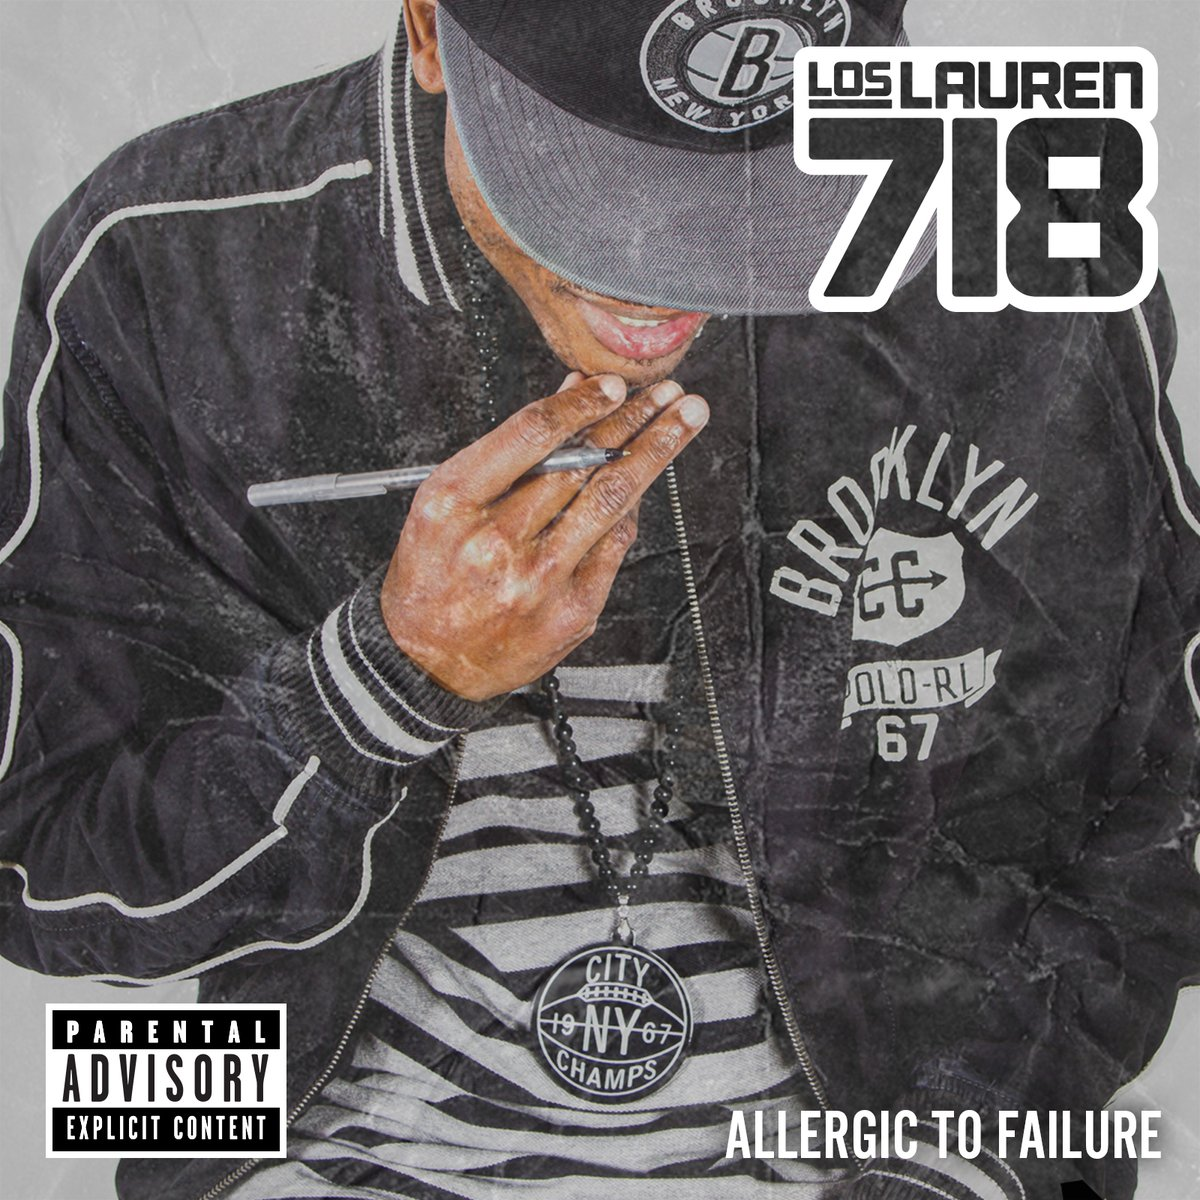 Out now on all streaming platforms, link here: https://songwhip.com/album/loslauren-718/allergic-to-failure … #allergictofailure#addictedtosuccess#onlybelieversachievesuccesspic.twitter.com/8h9X5vf0bk